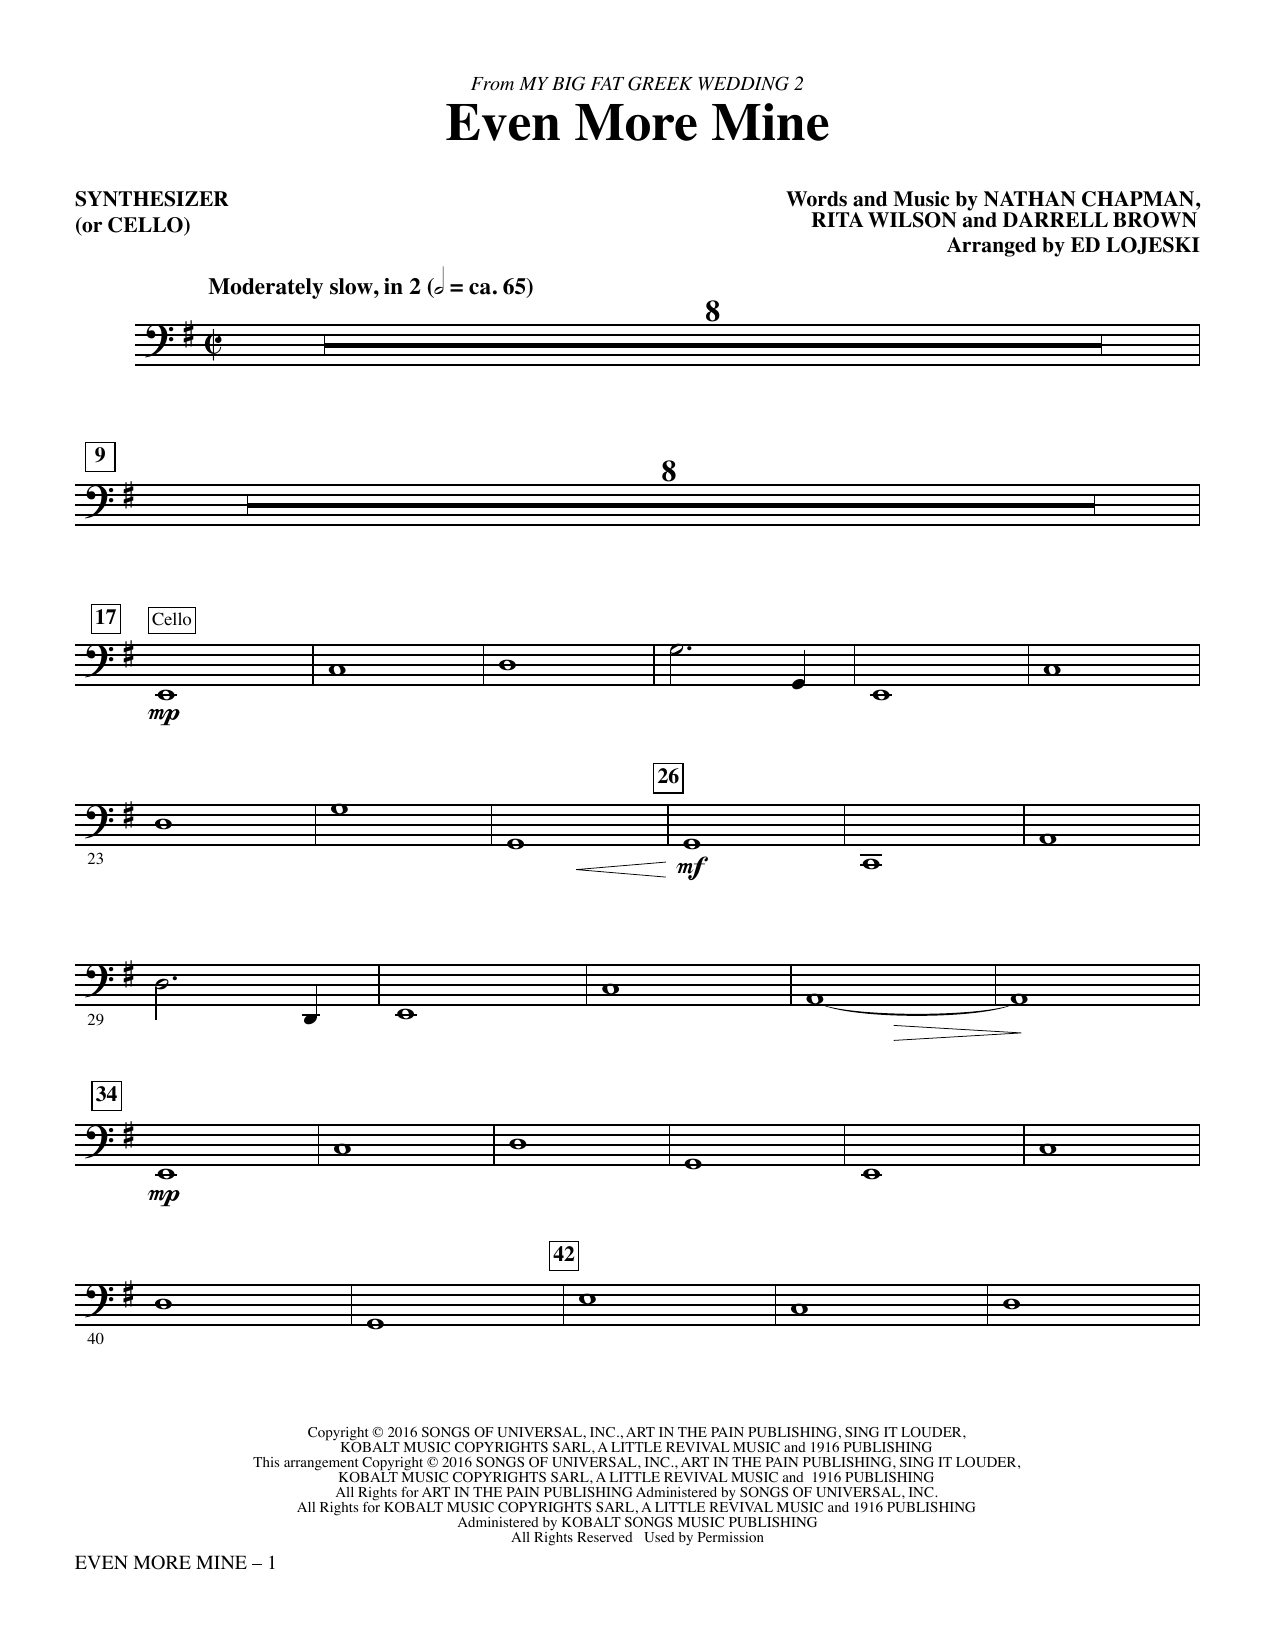 Even More Mine (complete set of parts) sheet music for orchestra/band by Ed Lojeski, Darrell Brown, Nathan Chapman and Rita Wilson. Score Image Preview.